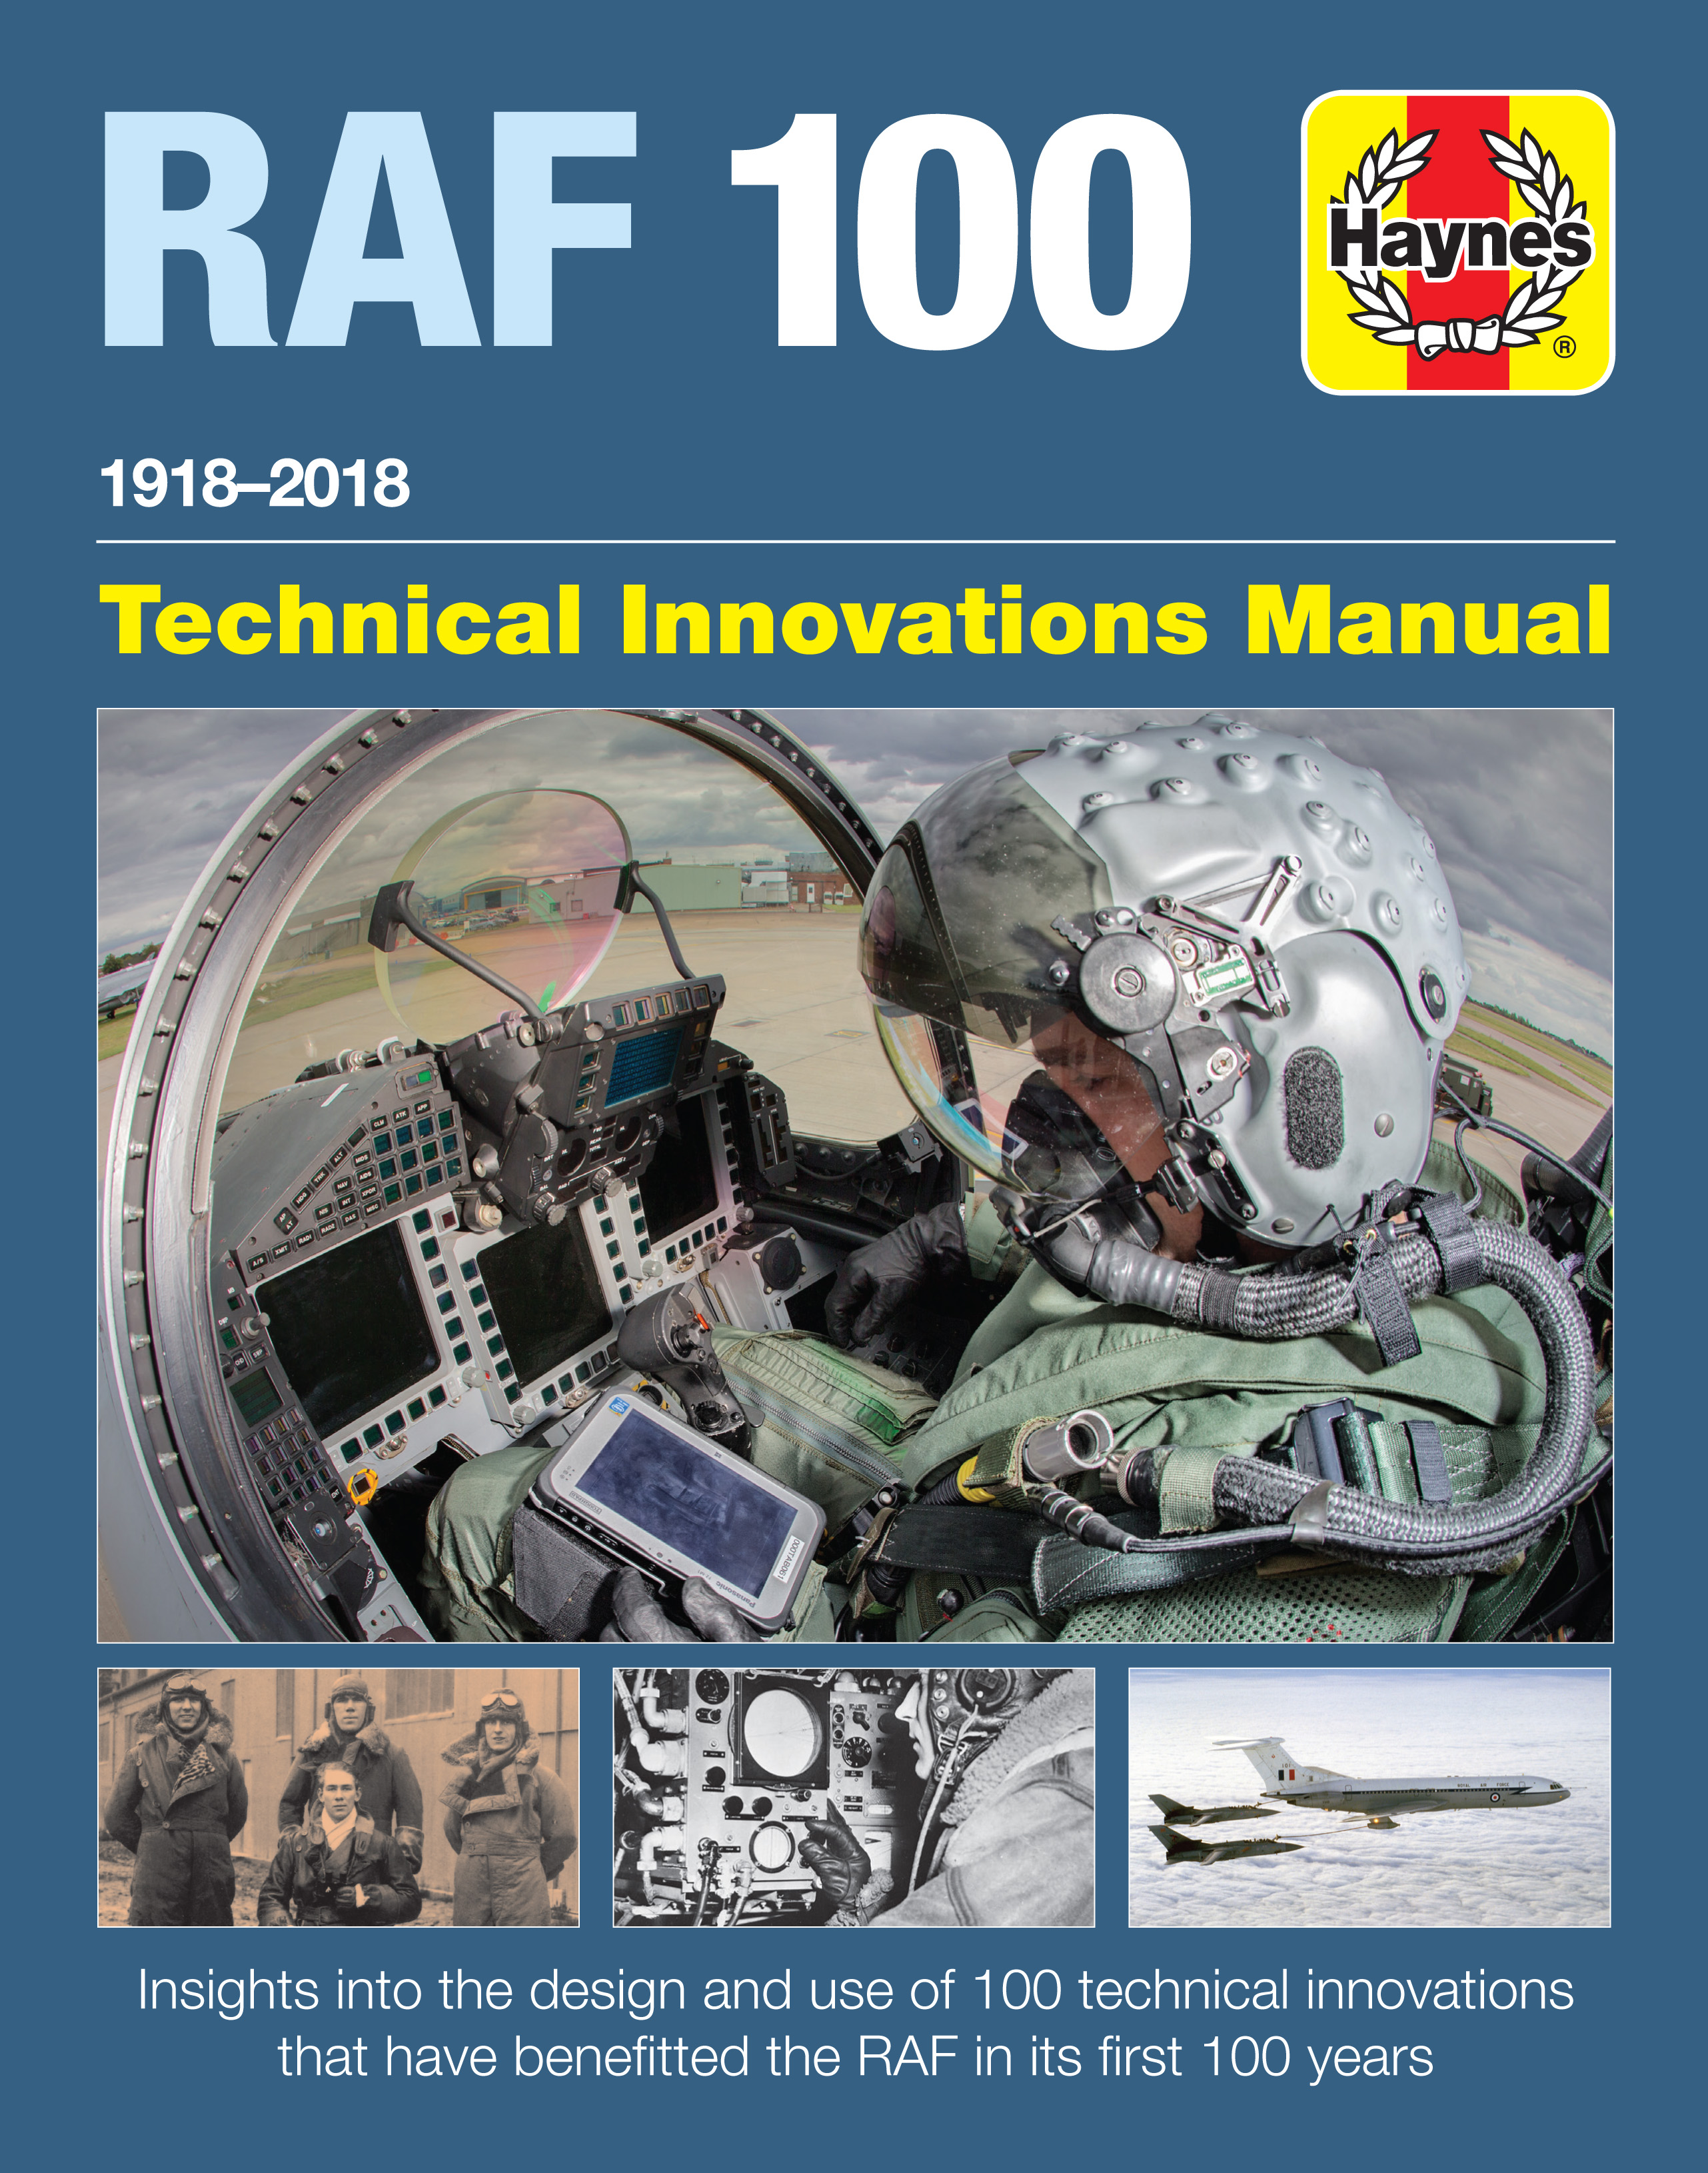 RAF in 100 Technical Innovations Manual_1